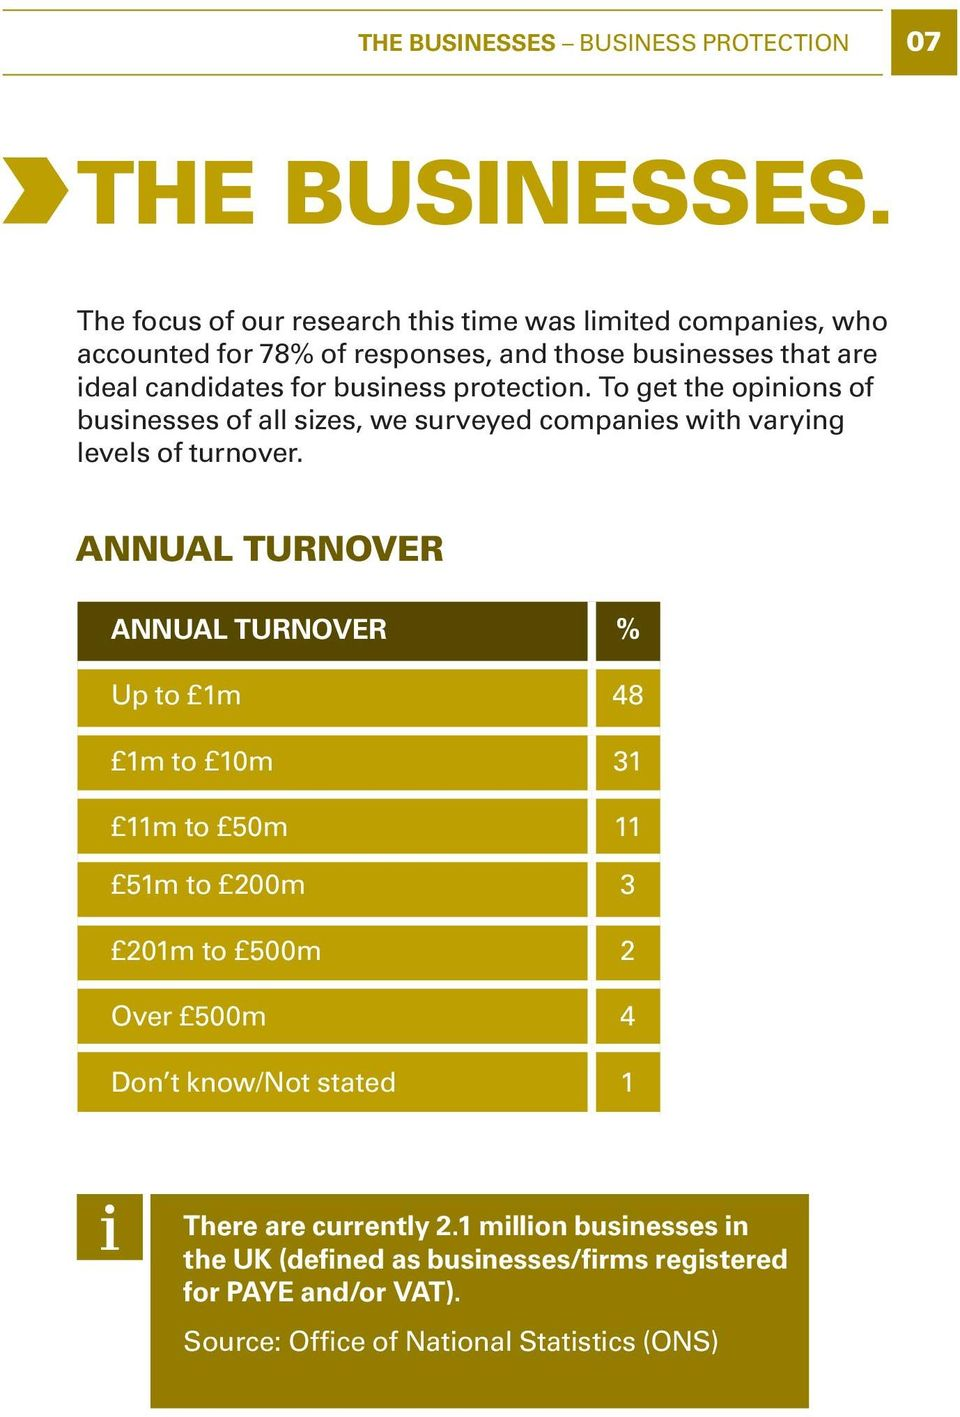 protection. To get the opinions of businesses of all sizes, we surveyed companies with varying levels of turnover.